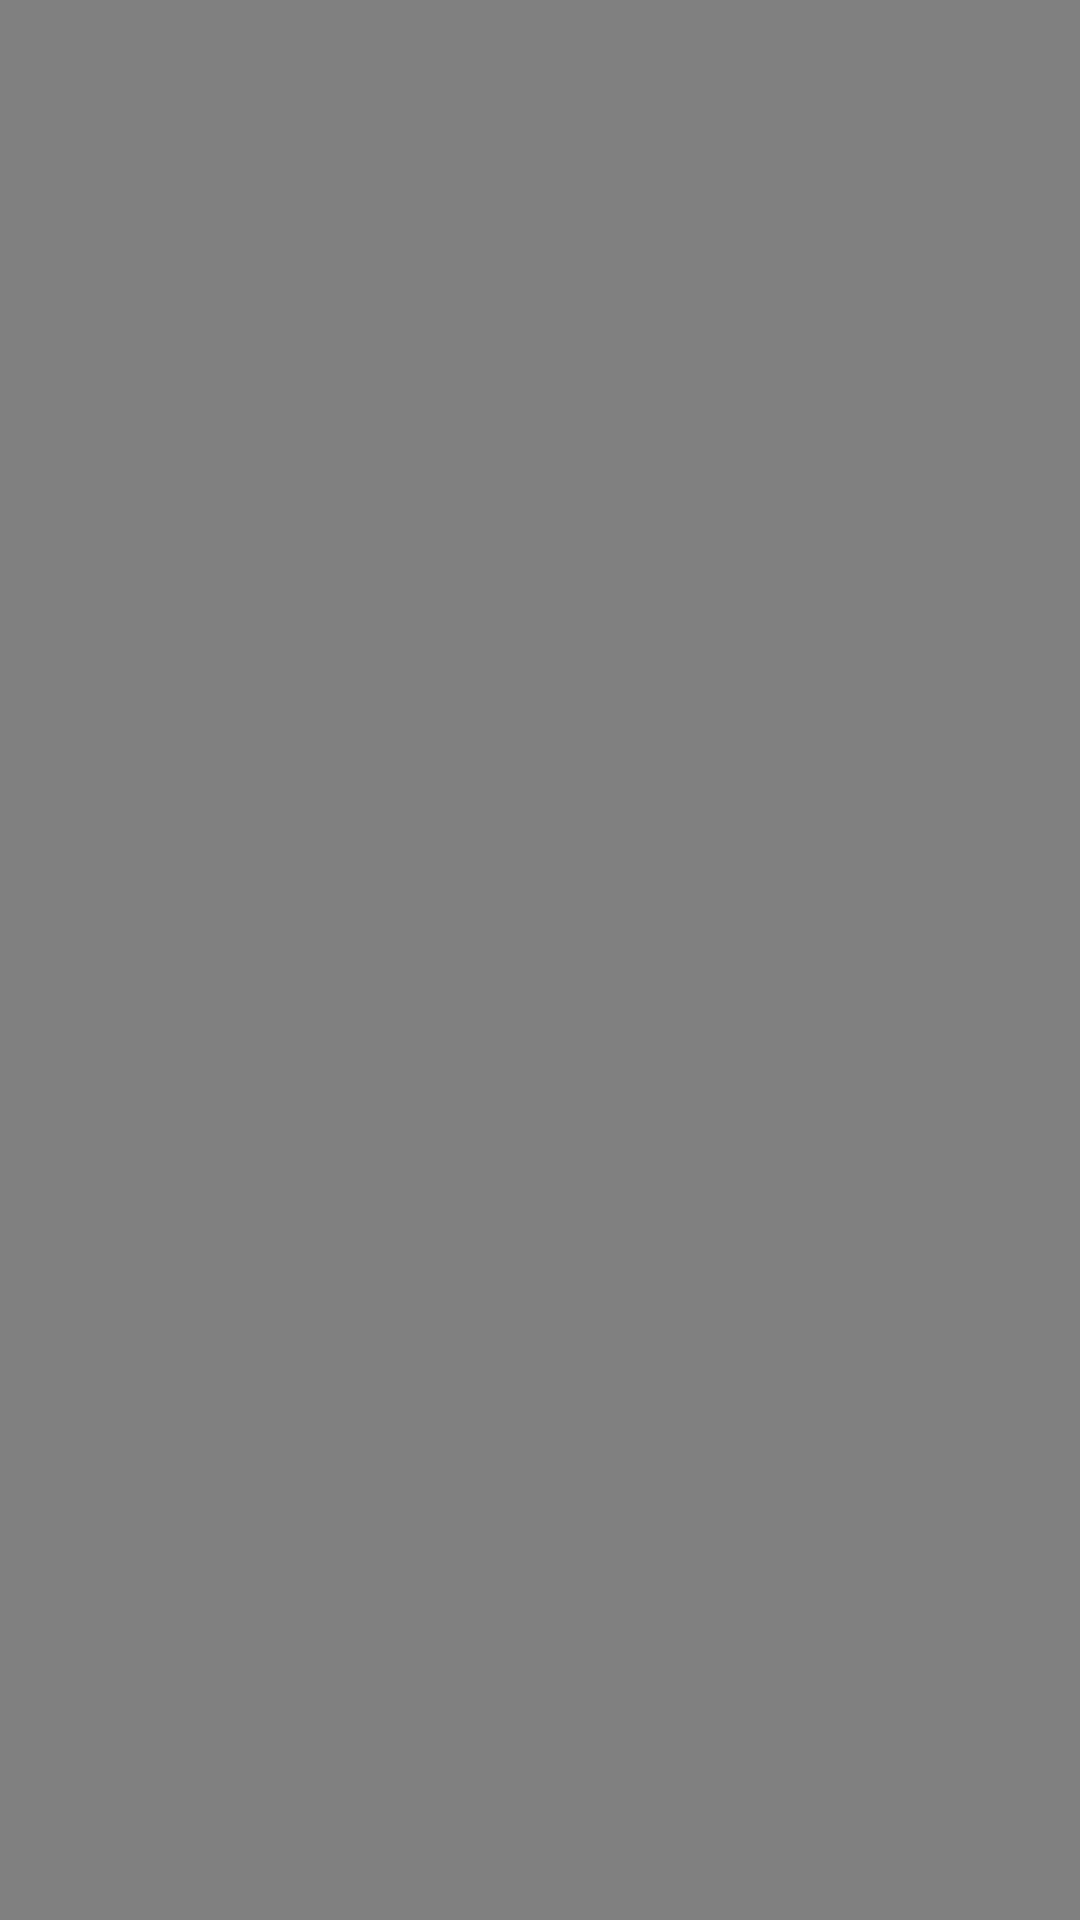 1080x1920 Trolley Grey Solid Color Background